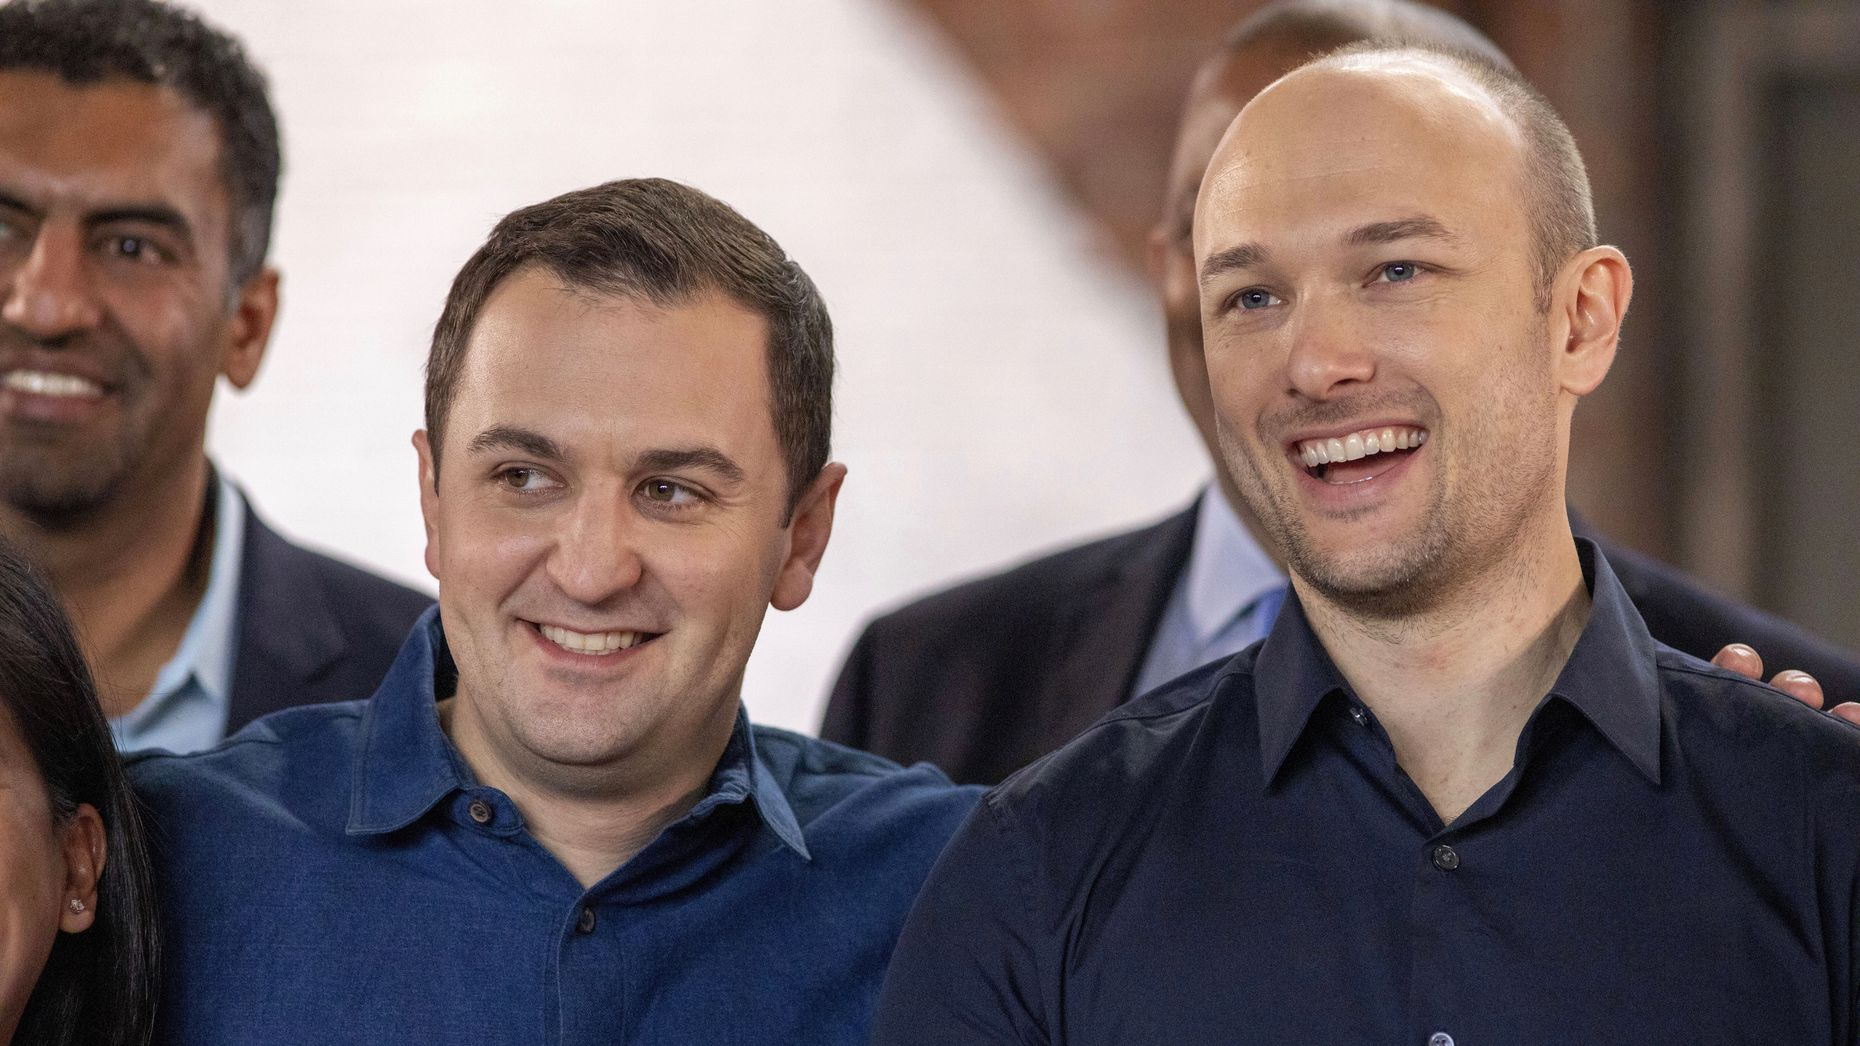 Lyft's co founders John Zimmer and Logan Green after the company's IPO last Friday. Photo by Bloomberg.